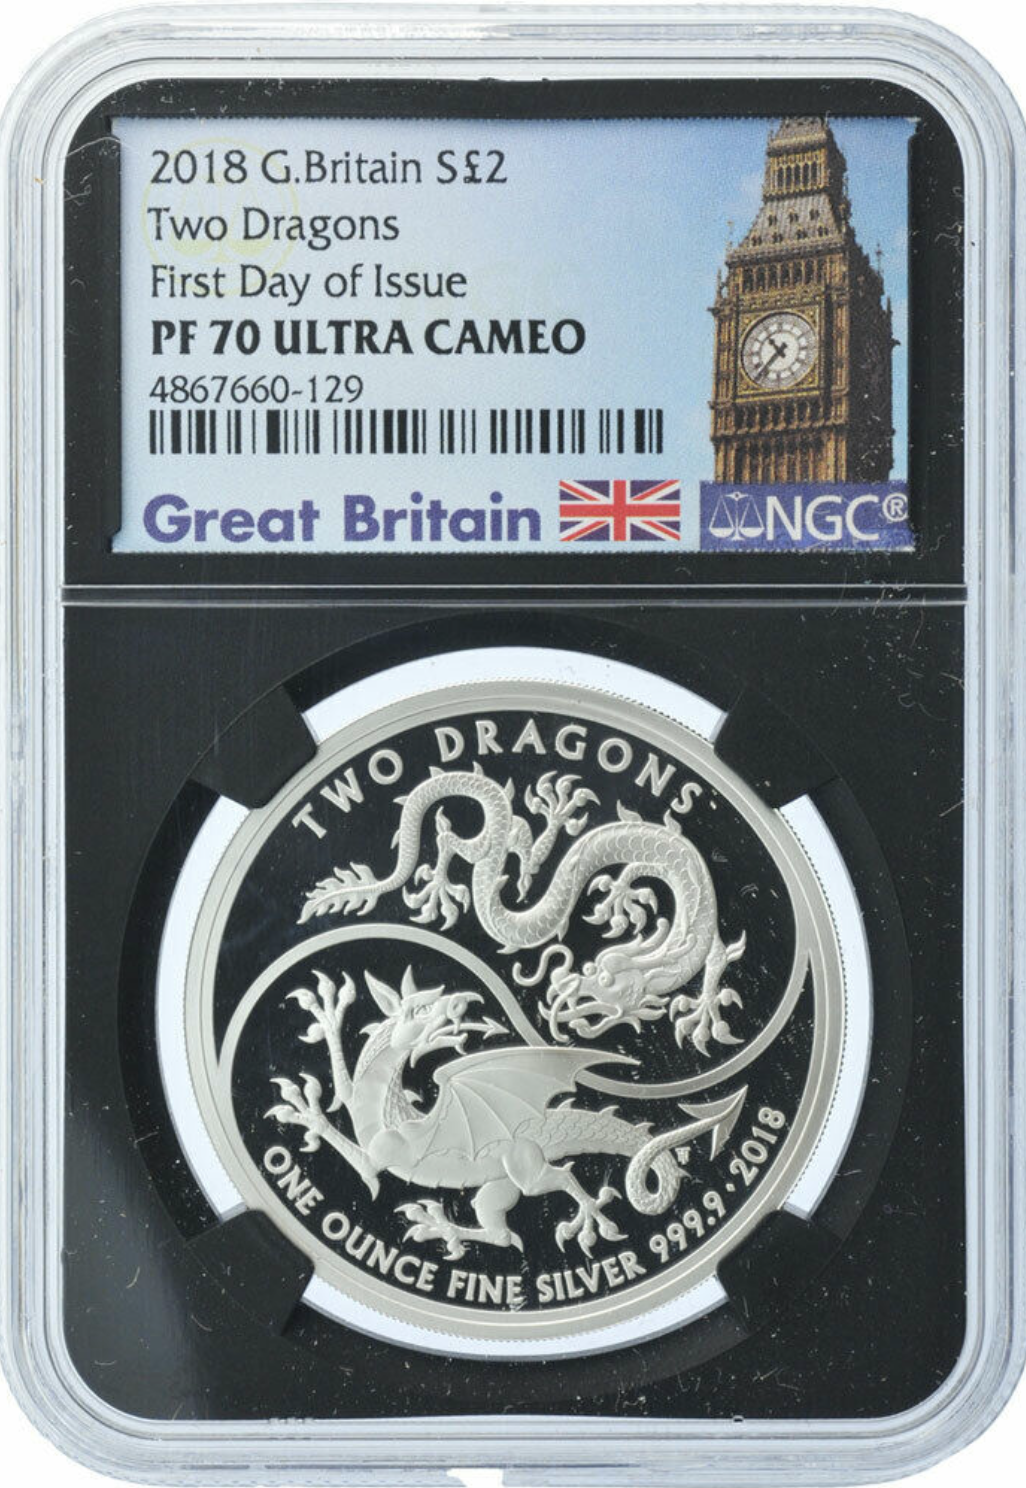 2018-Two-Dragons-Silver-Proof-1oz